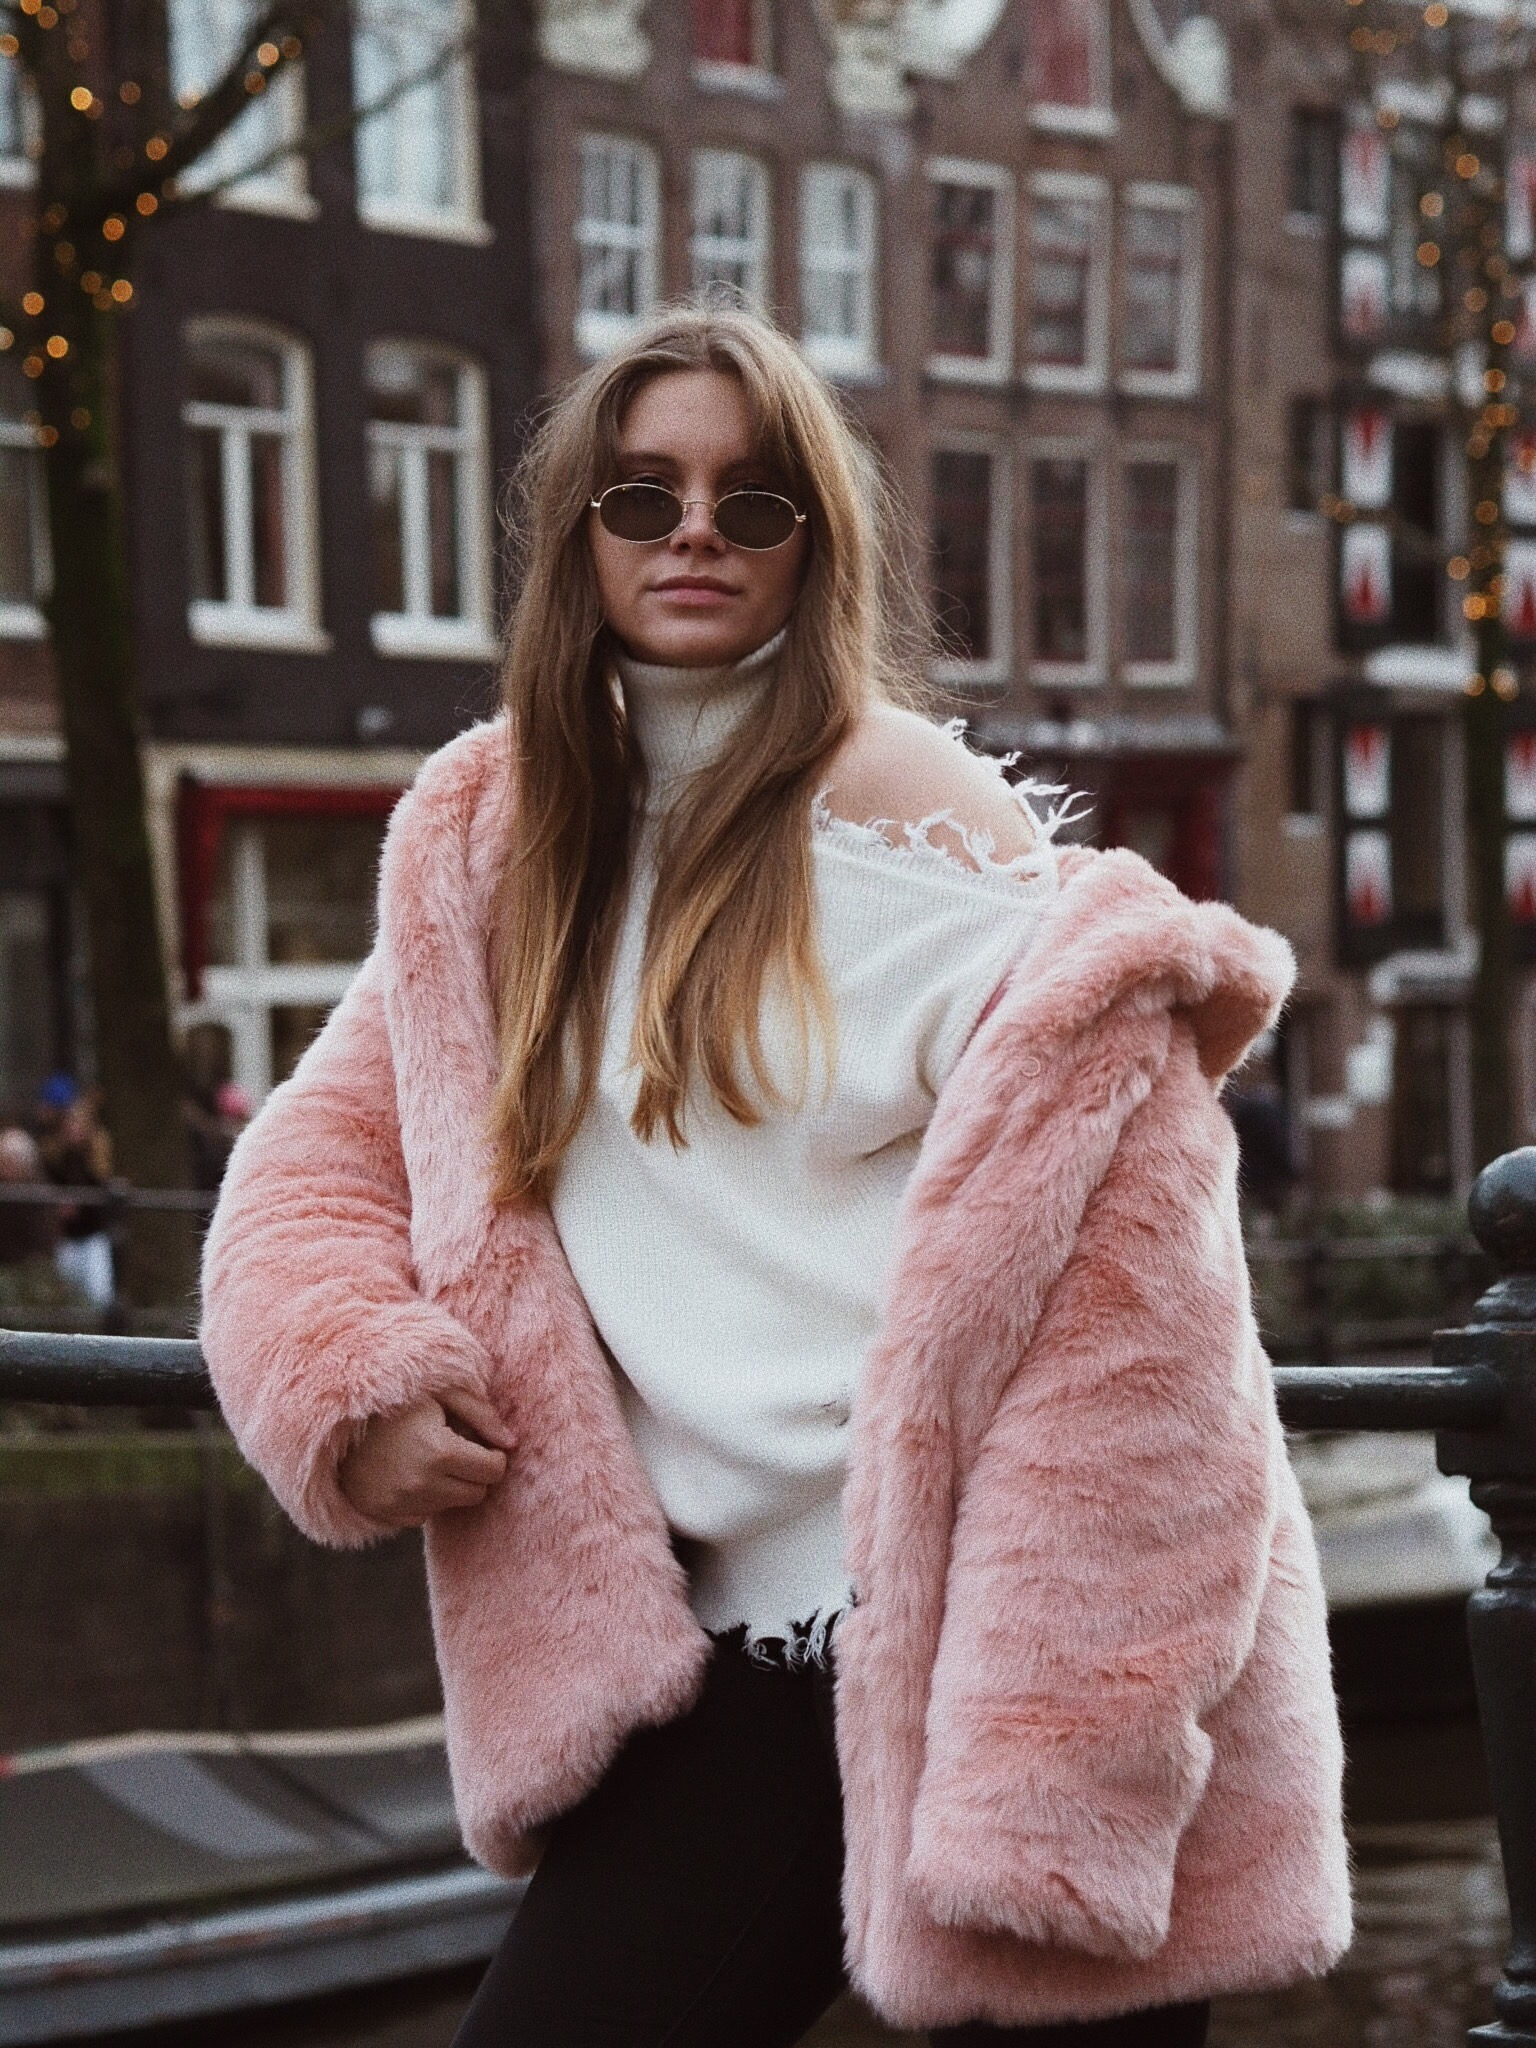 Blogger Dominique candido wearing lpa and lovers + friends sweater